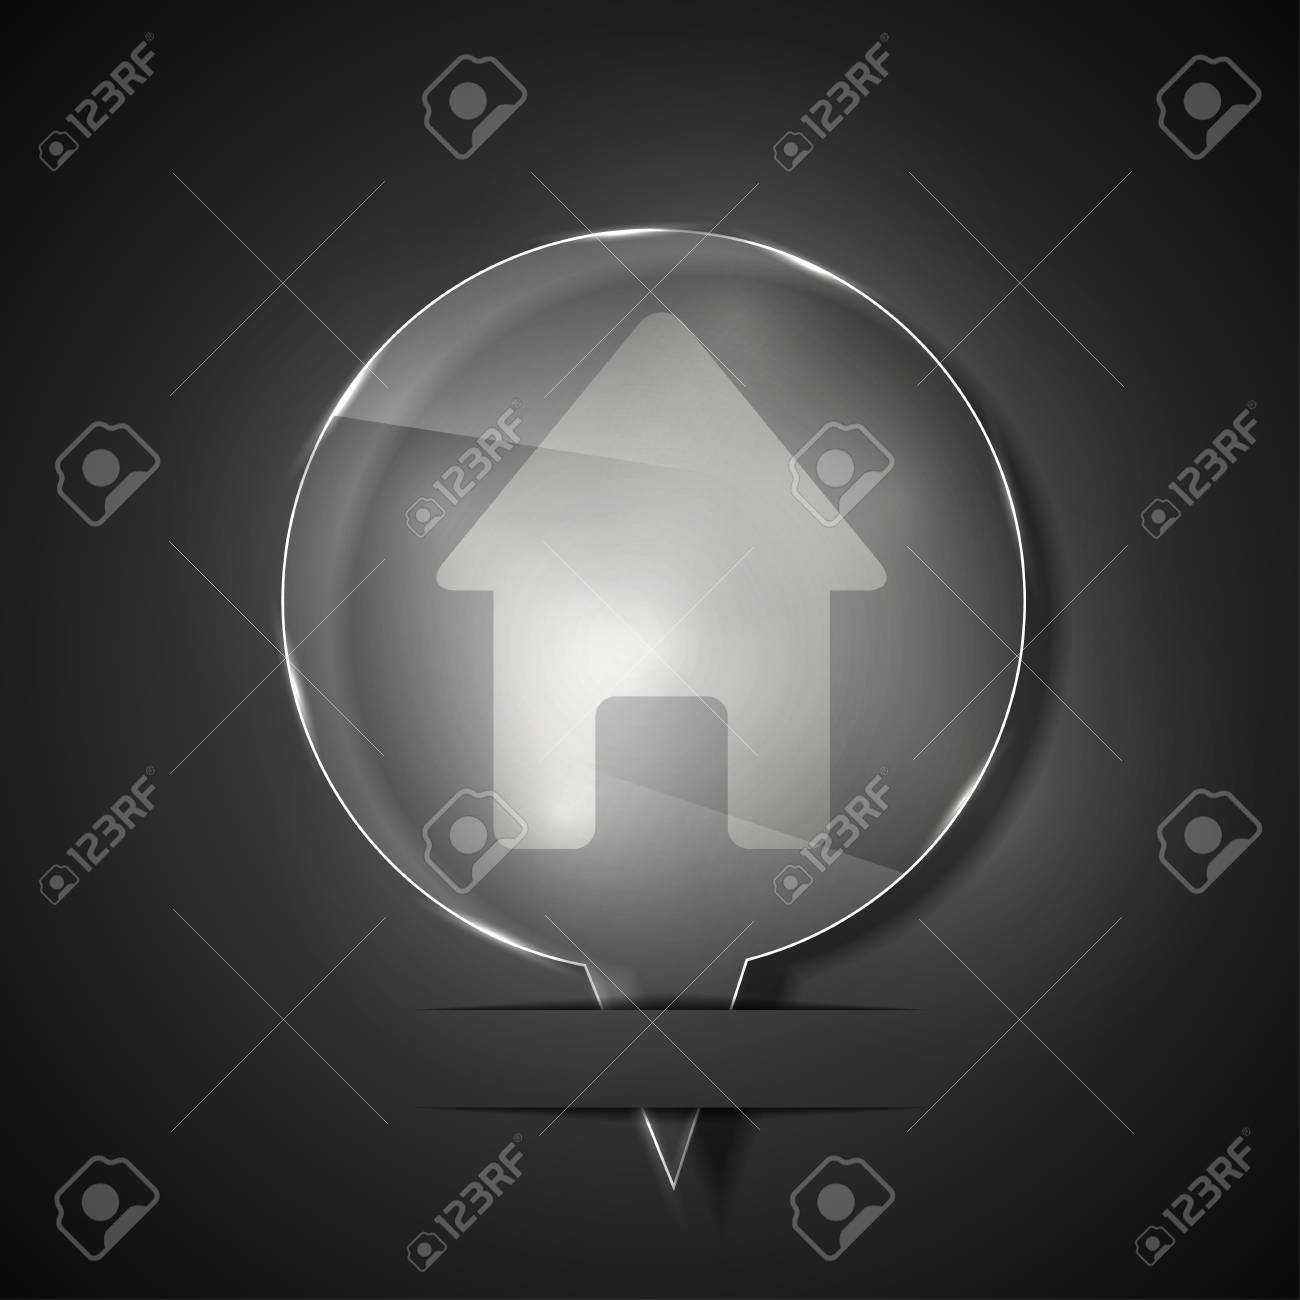 glass home icon on gray background. Stock Vector - 15145649